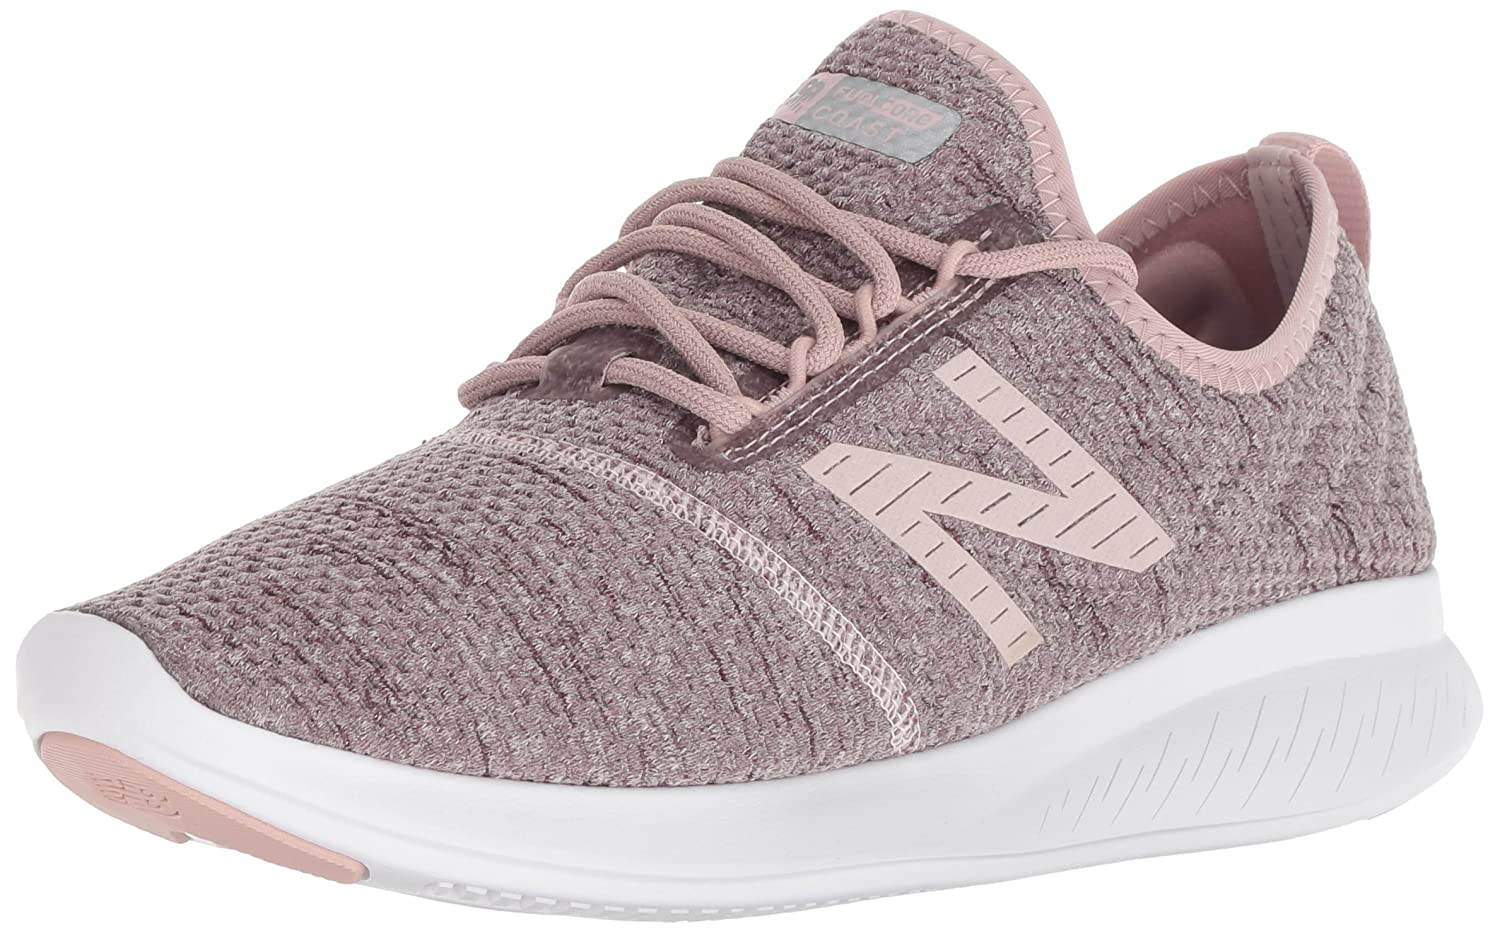 New Balance Women's Coast V4 FuelCore Running Shoe B0771GX6L7 8.5 B(M) US|Conch Shell